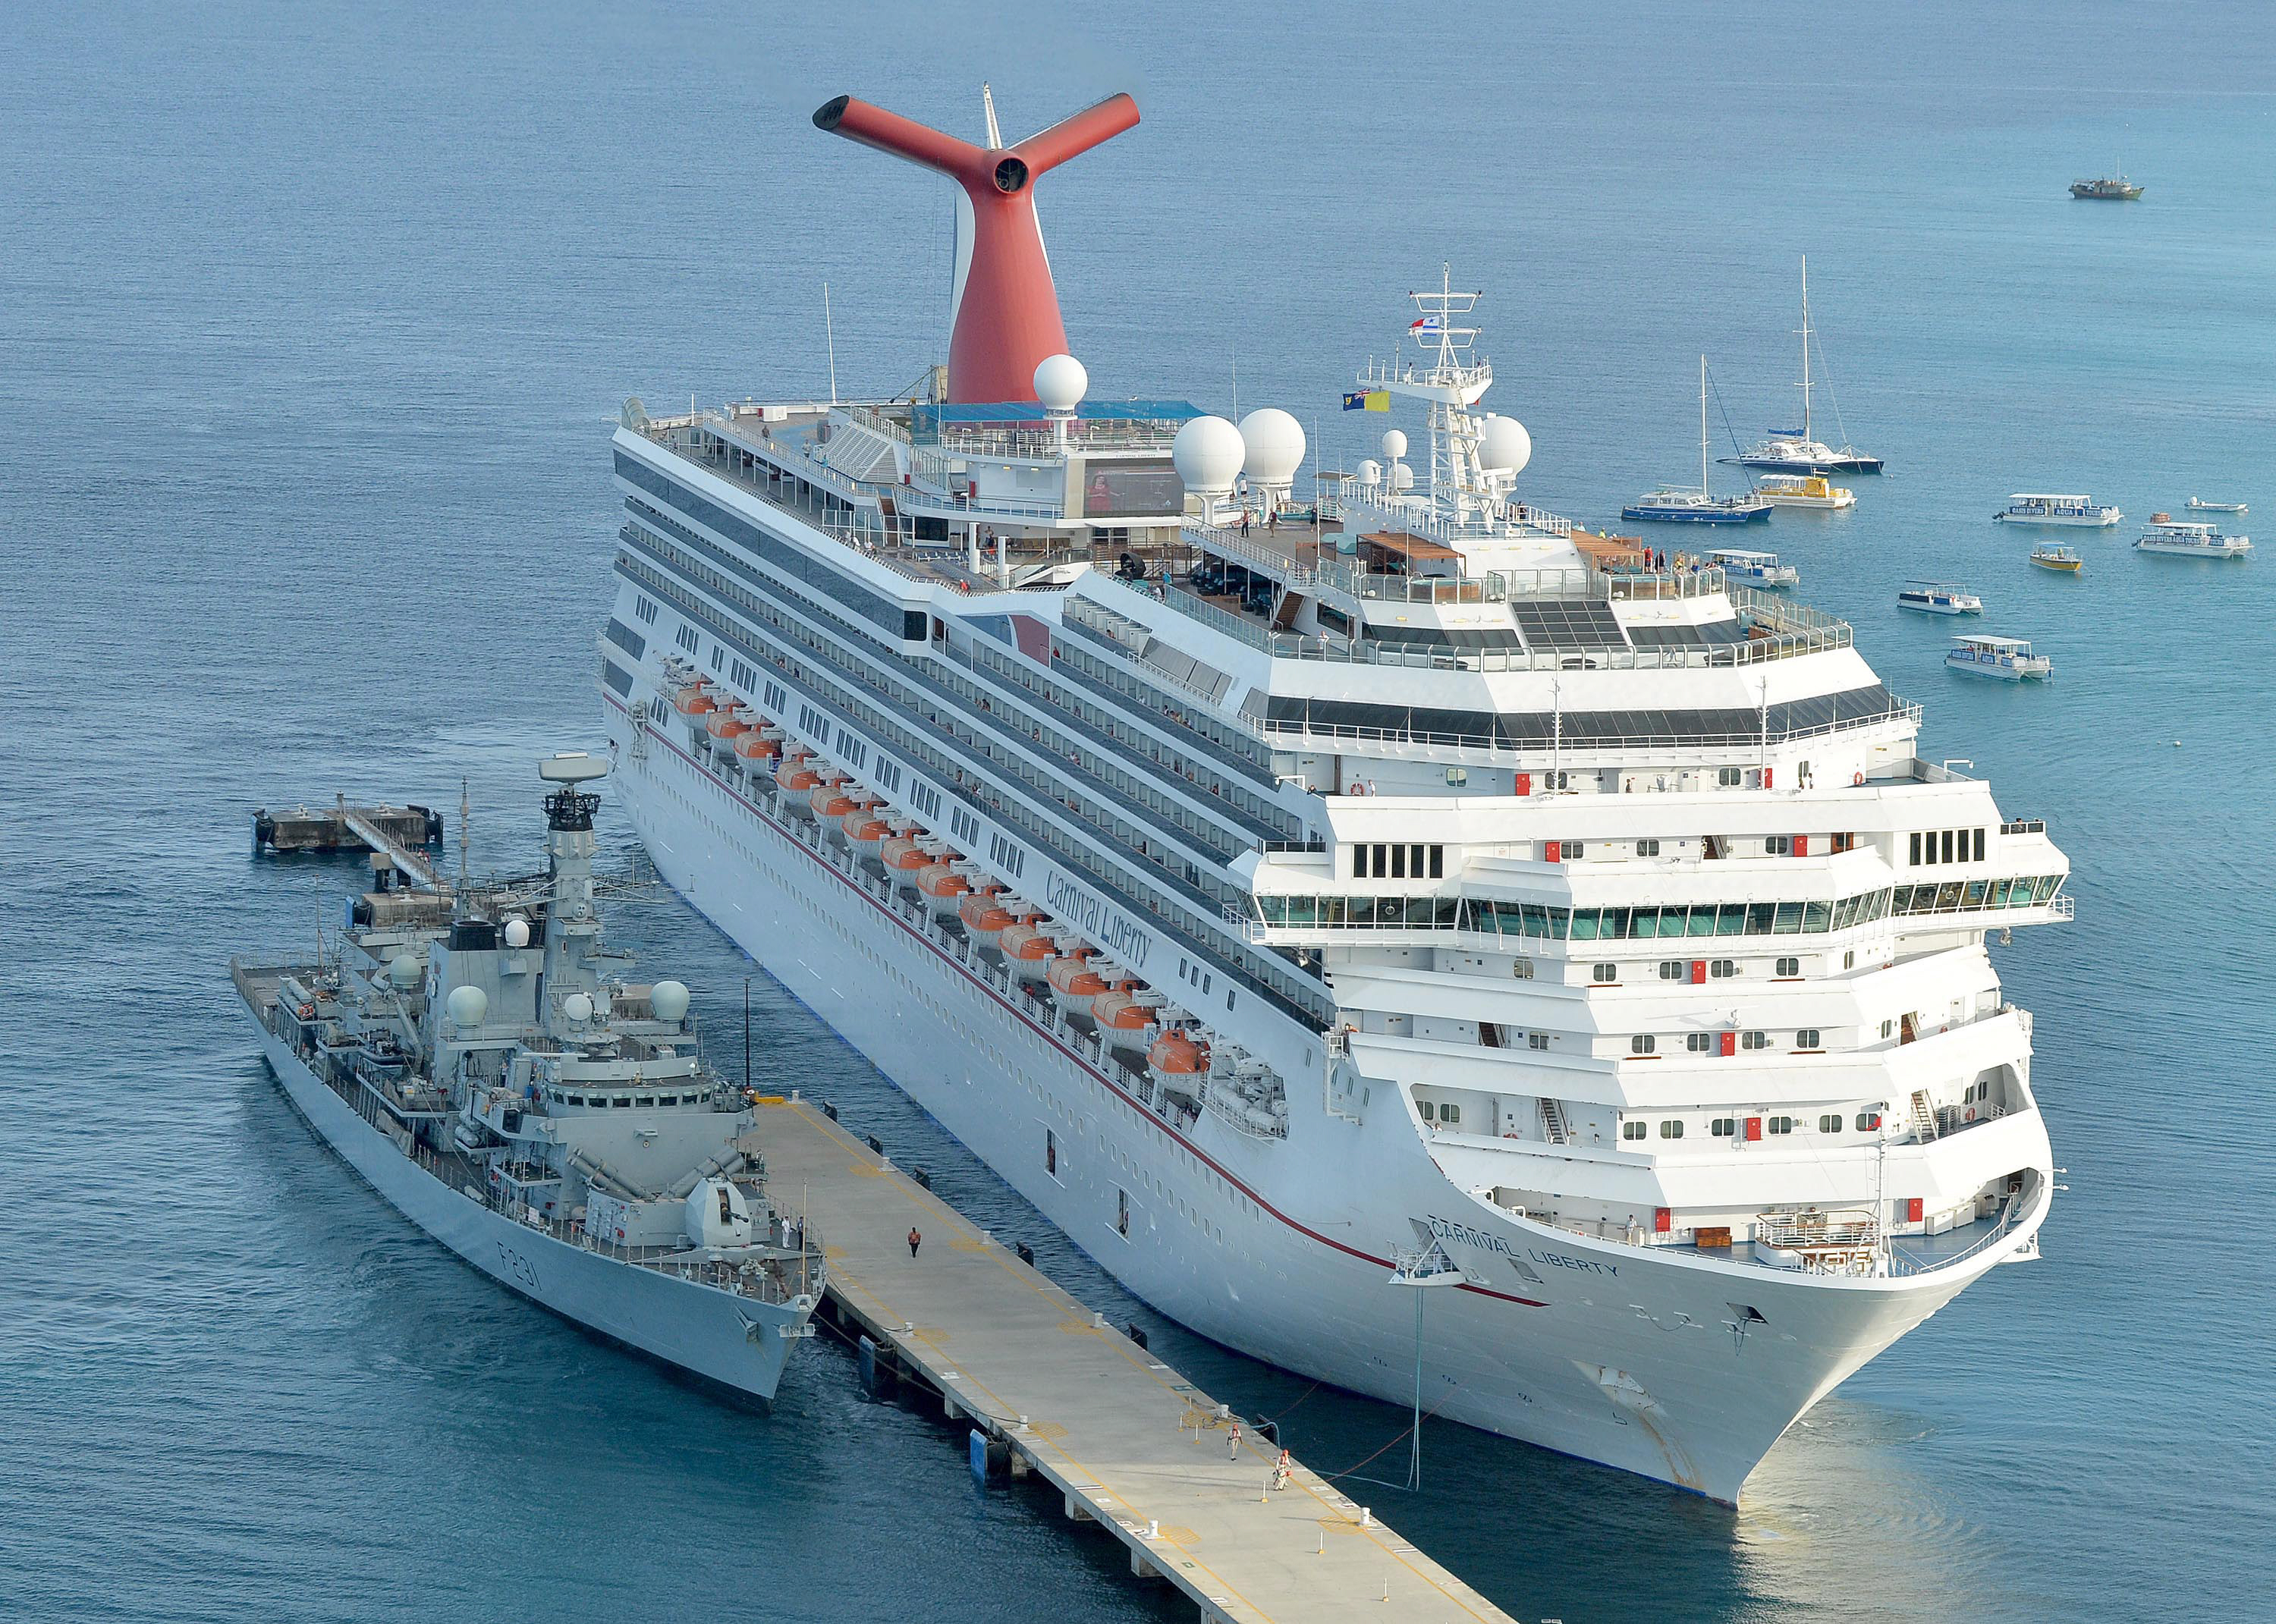 FileHMS Argyll With Cruise Liner MV Carnival Liberty MOD - Pictures of carnival liberty cruise ship